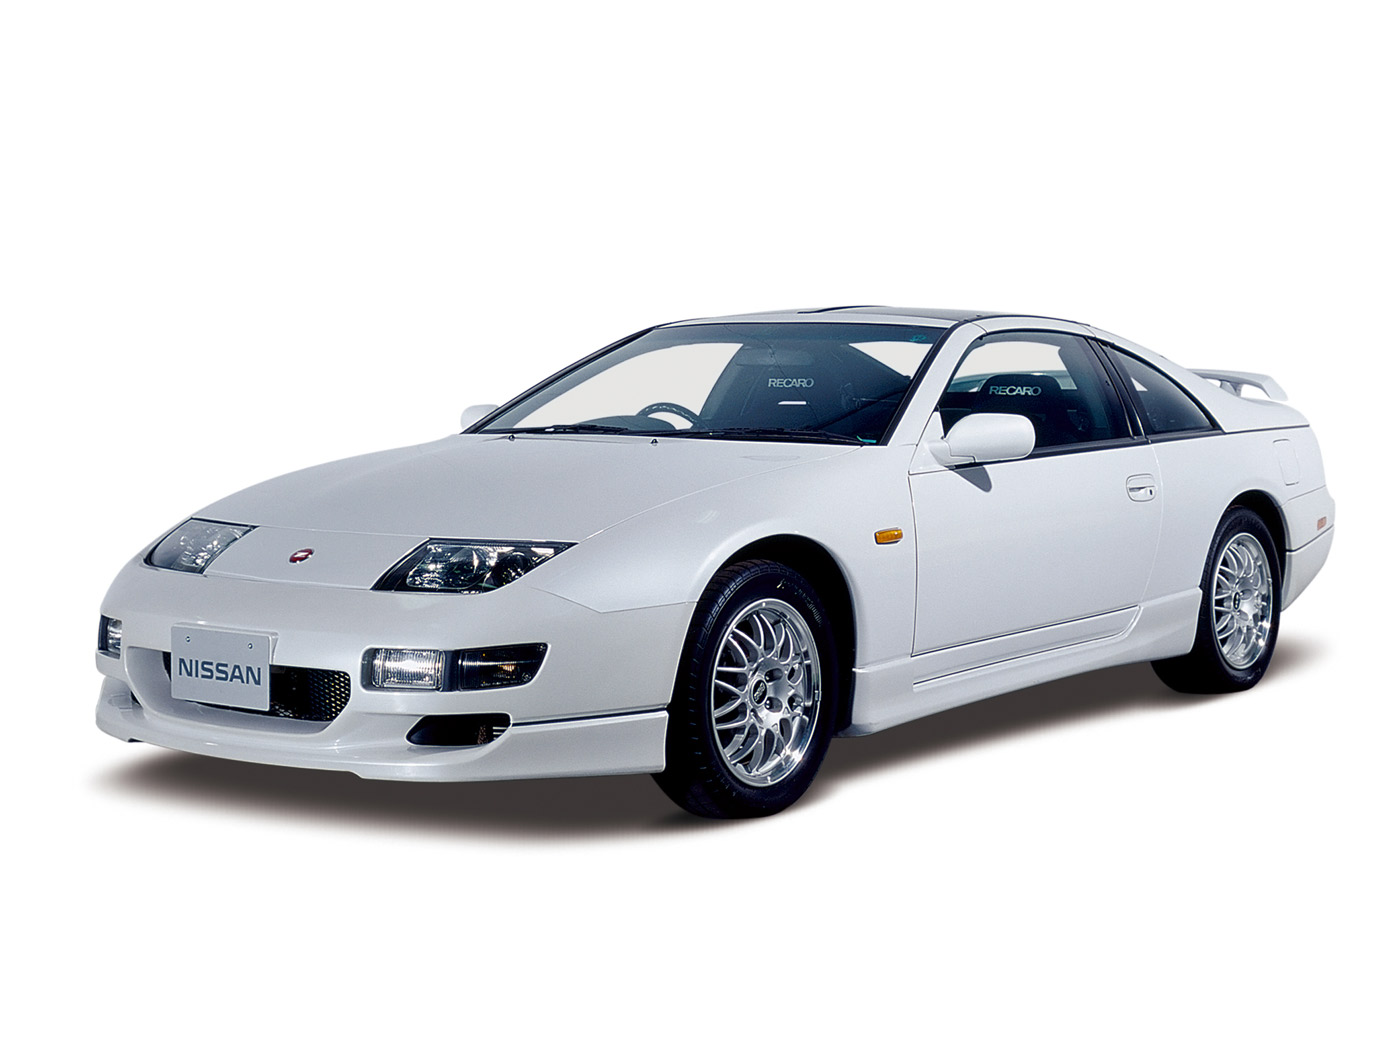 Nissan 300ZX Fairlady Z - Photos, News, Reviews, Specs ...